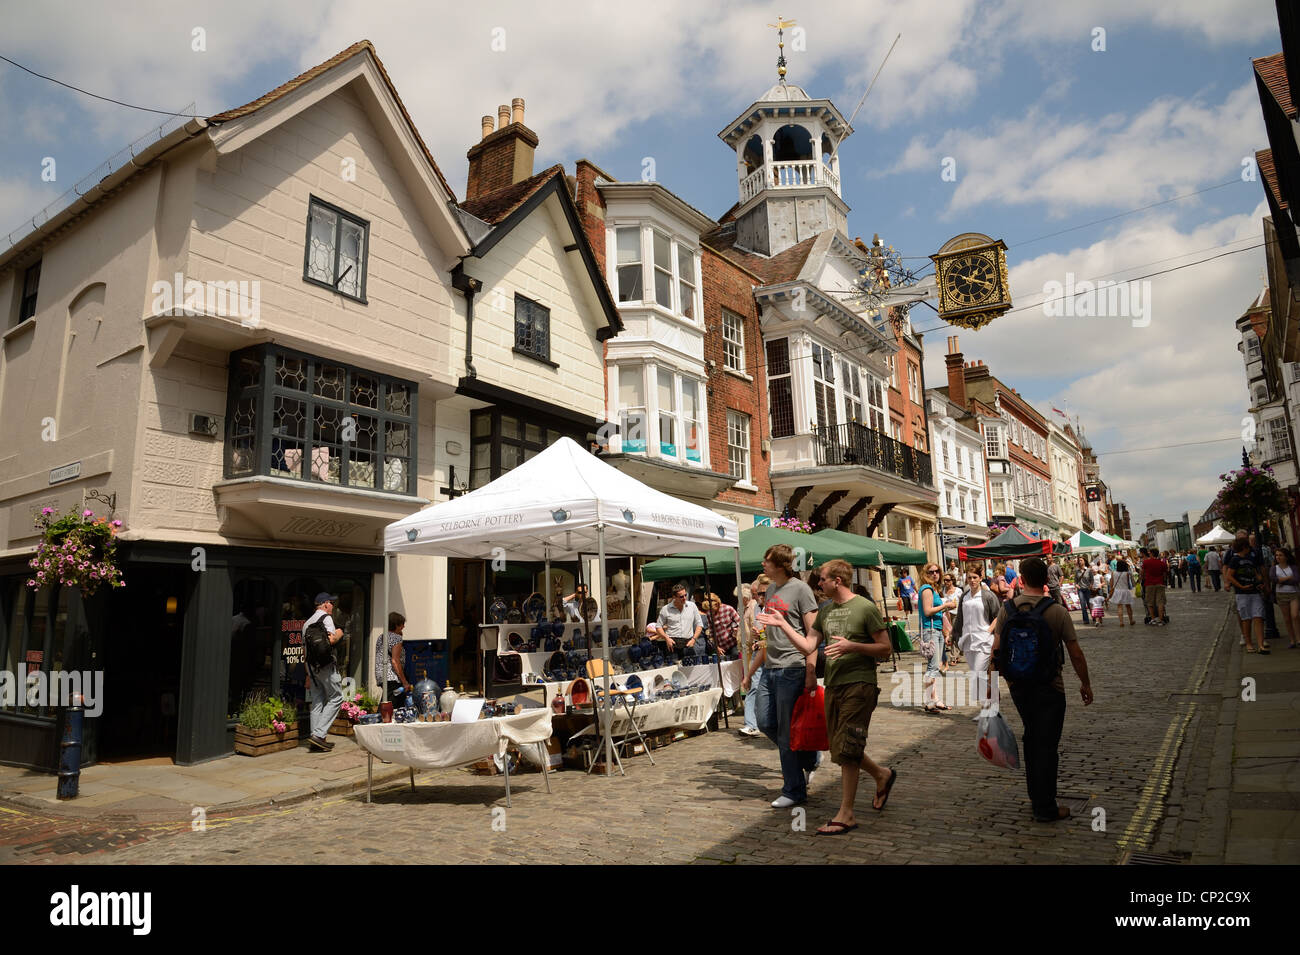 Market in front of Guildhall, Guildford High Street, Surrey, England - Stock Image